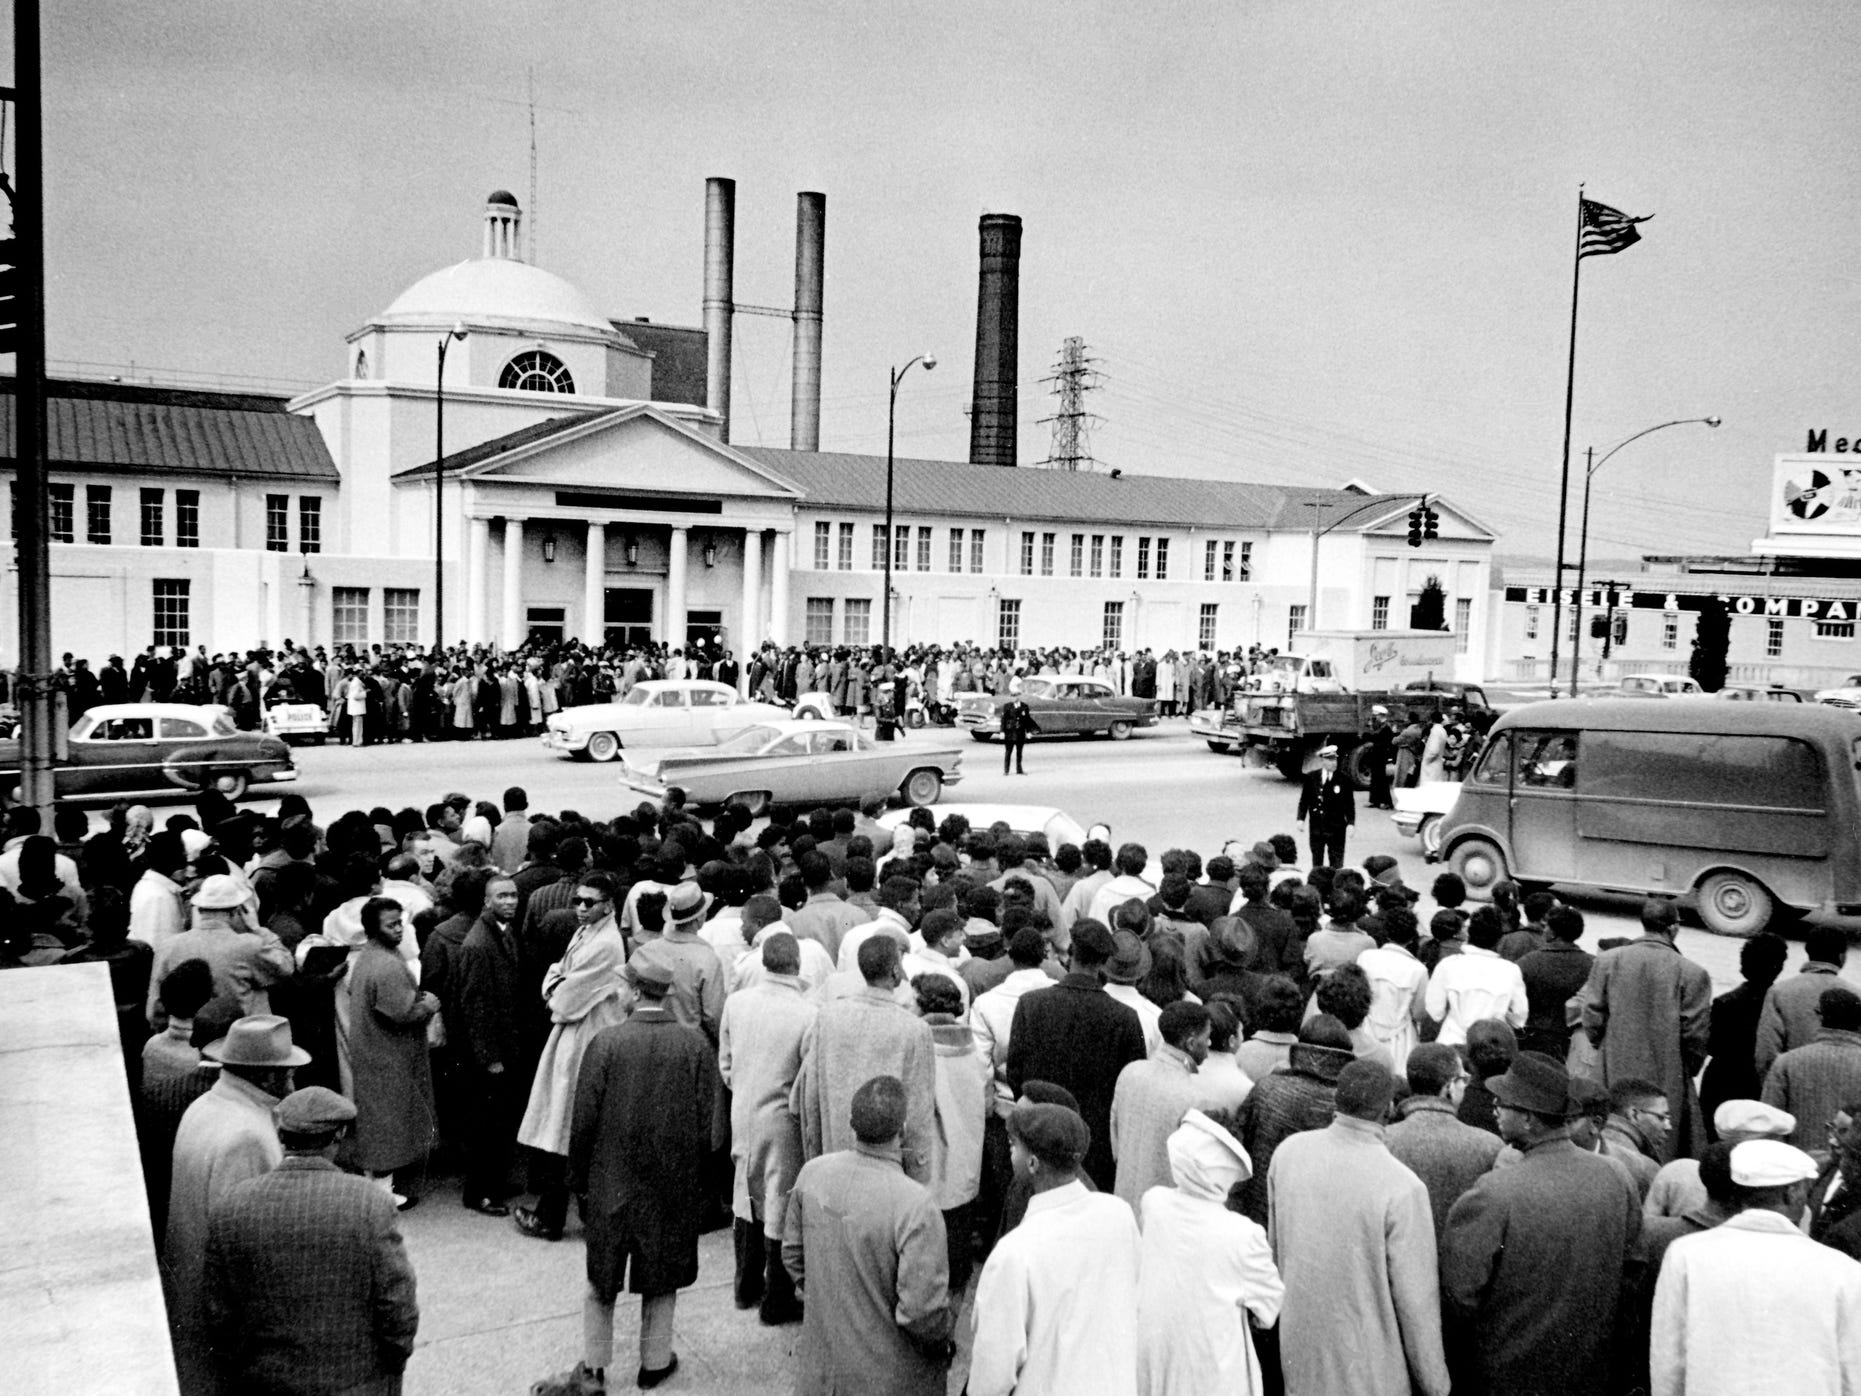 Hundreds jam the sidewalks outside Nashville city court Feb. 29, 1960, where black and white students were being tried on charges stemming from lunch counter demonstrations at five downtown stores. Many in the crowd sang spirituals as they awaited news of the trials. Police estimated the crowd at 2,000.